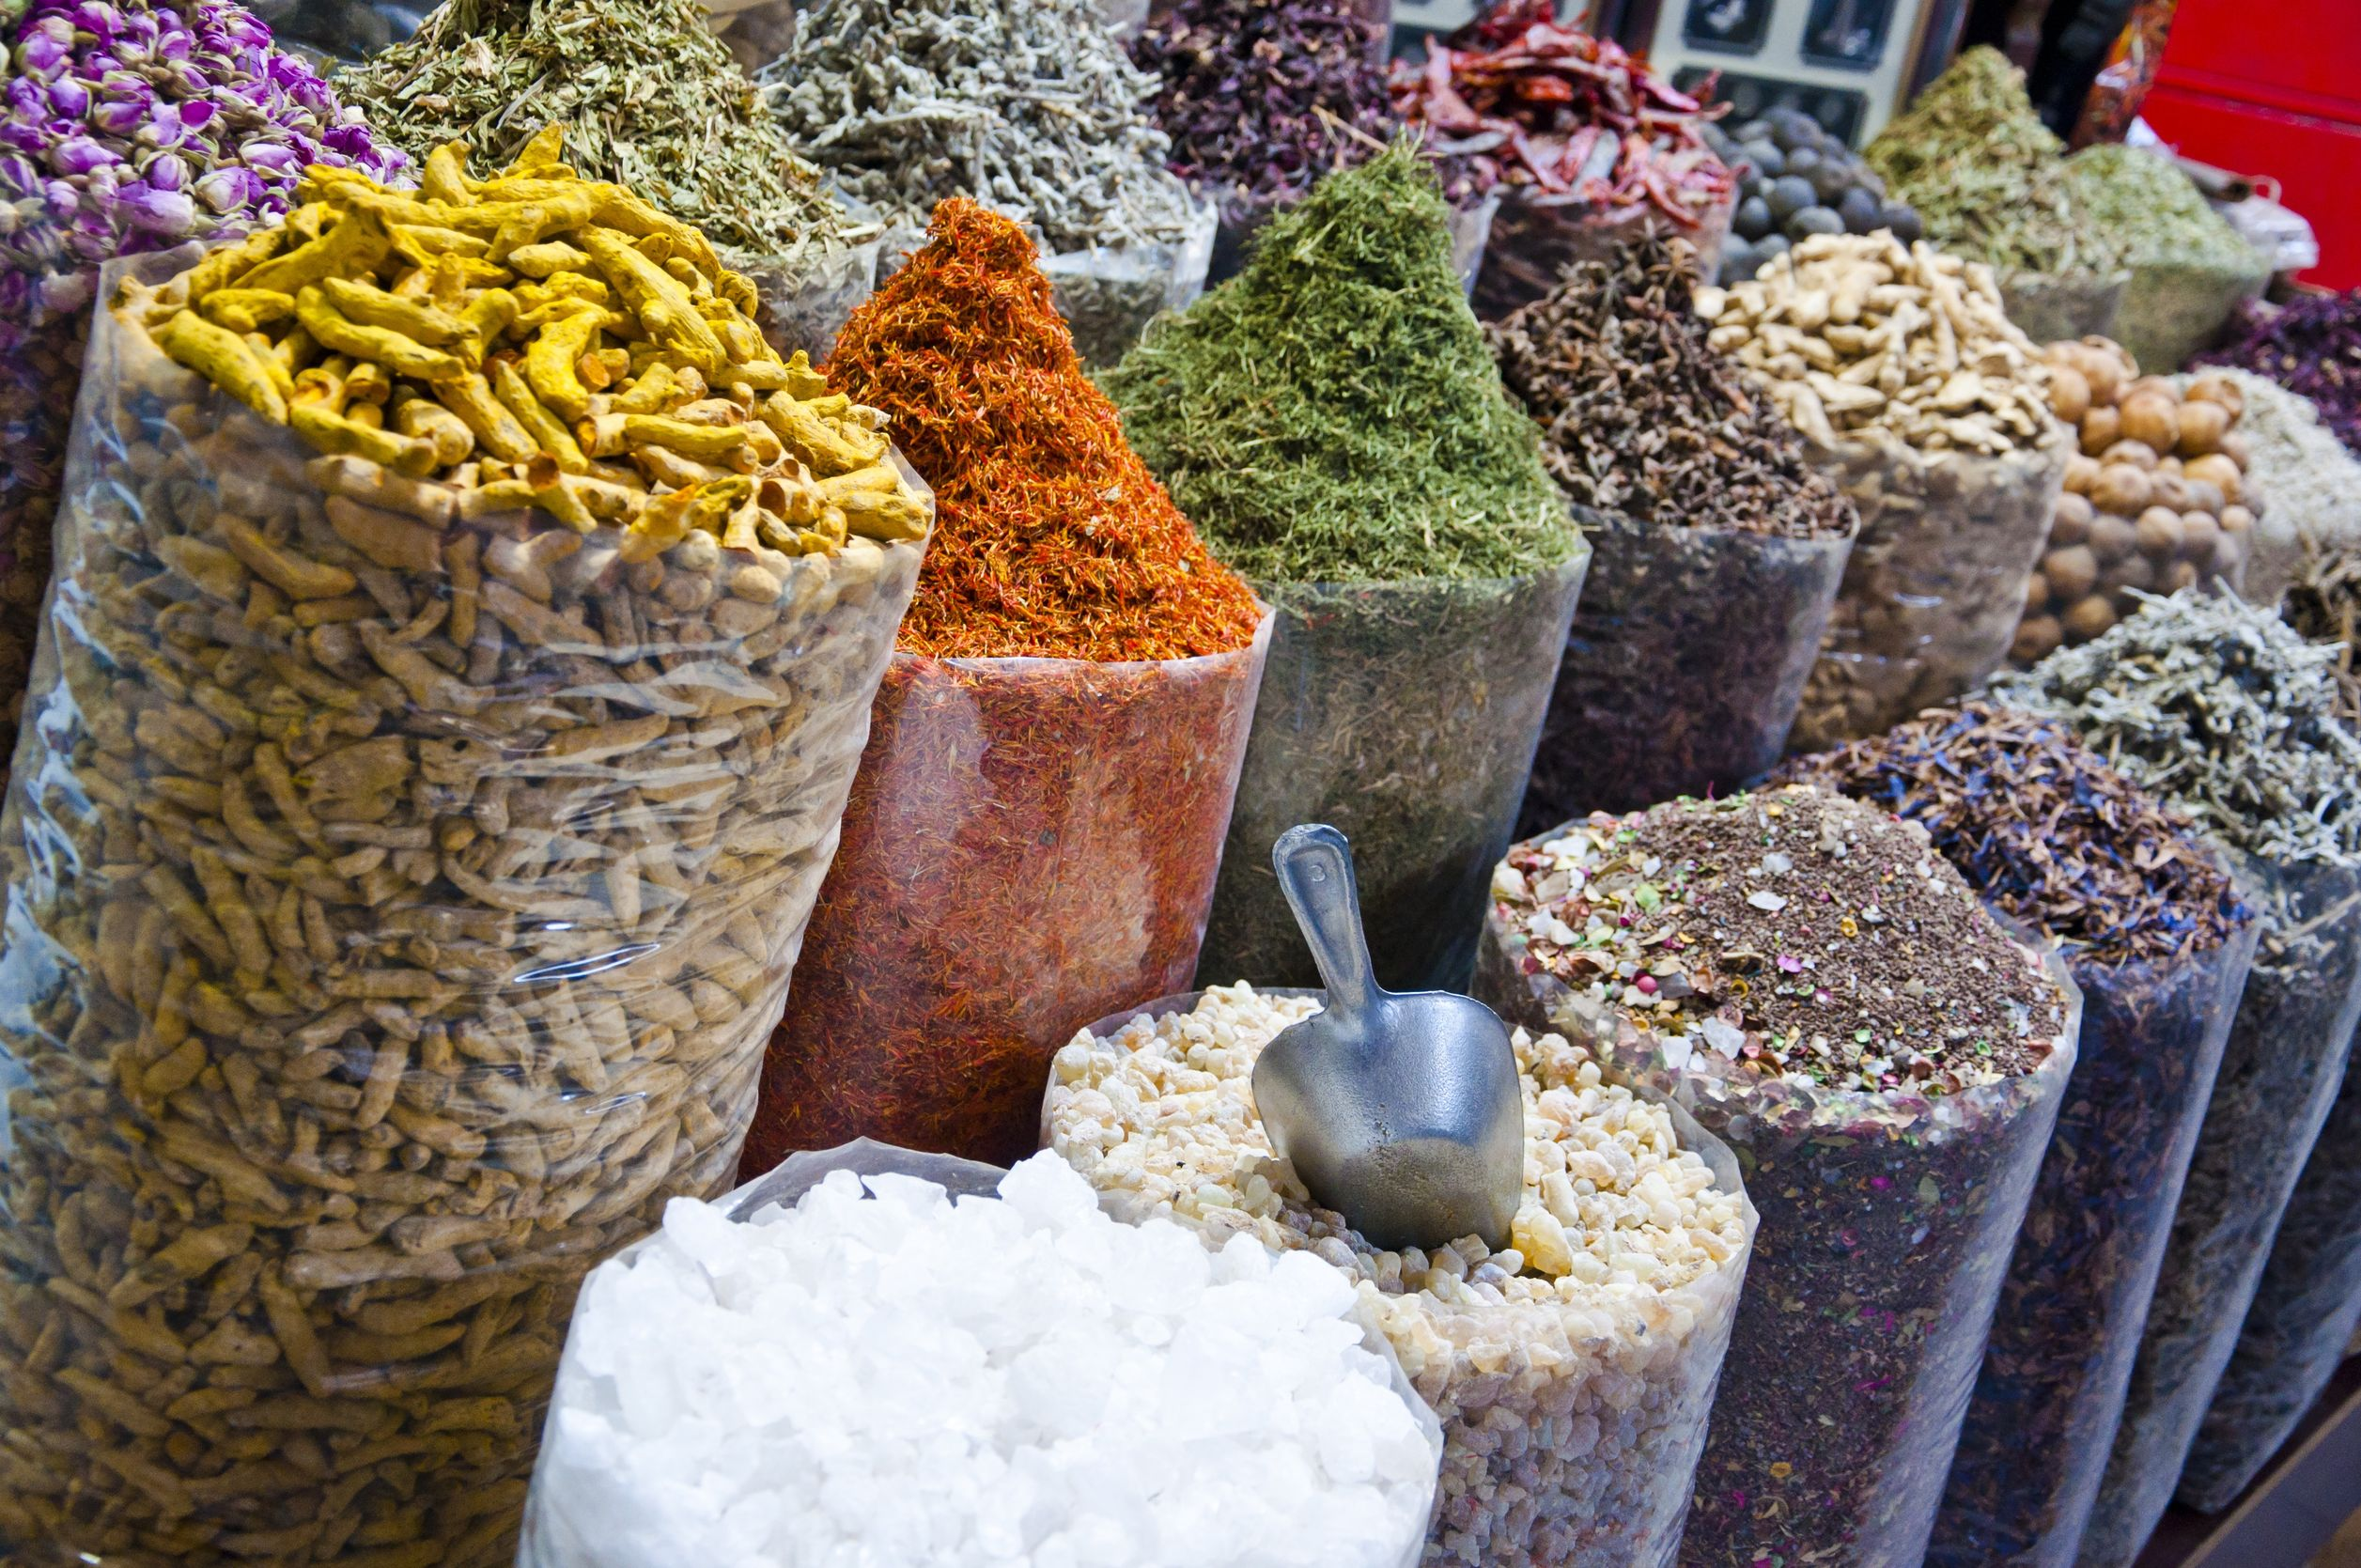 FTG-Various-sorts-of-spice-sold-at-the-souk-in-Dubai-UAE